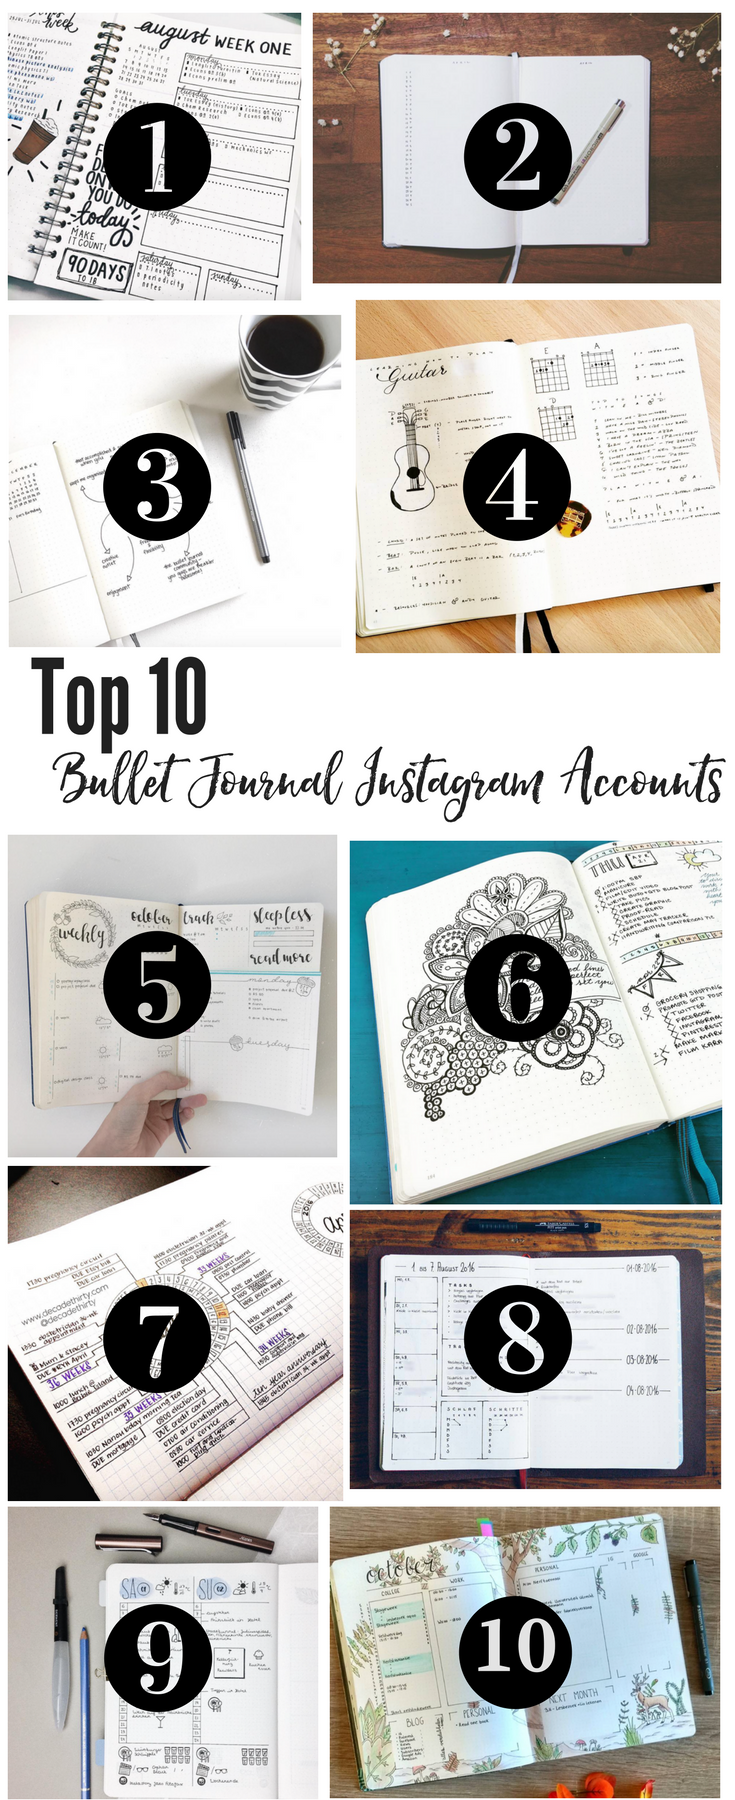 Top 10 Instagram accounts for bullet Journal Ideas! bullet journal ideas | bullet journaling ideas | how to bullet journal | bullet journal layout | how to start a bullet journal | bullet journal collections | bullet journal tips | bullet journal pages |